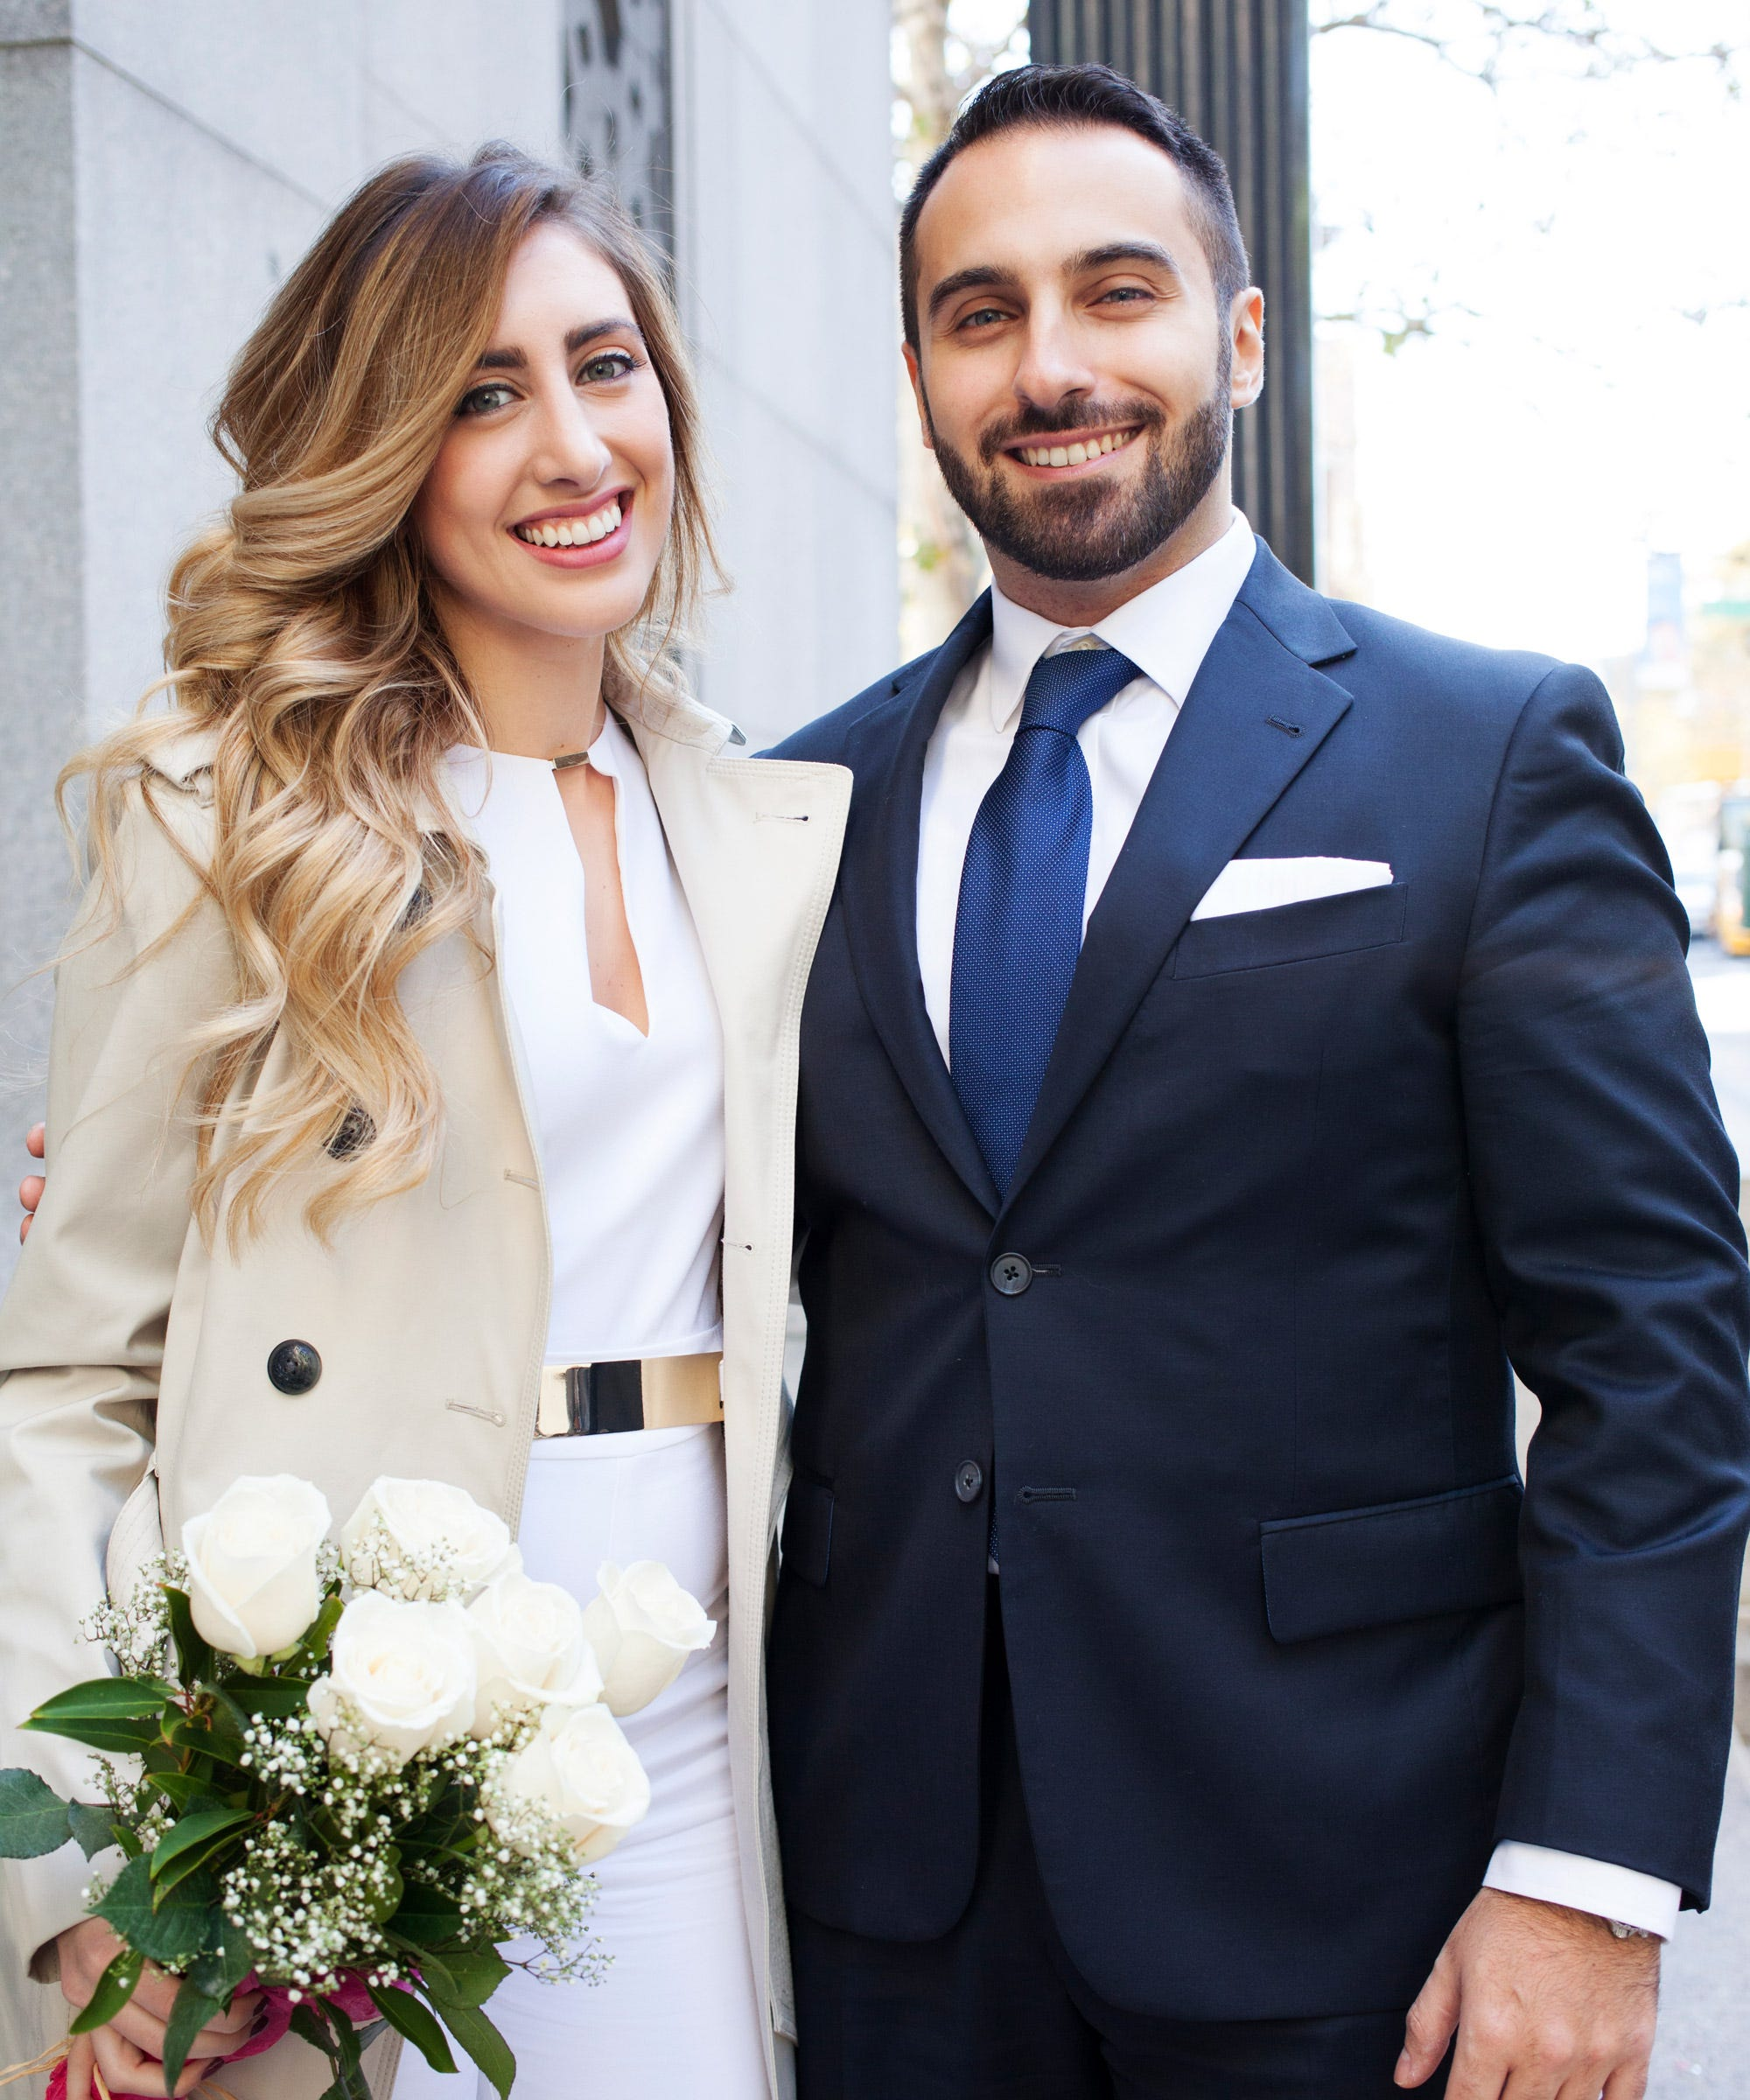 City Hall Wedding Style Photos Ideas